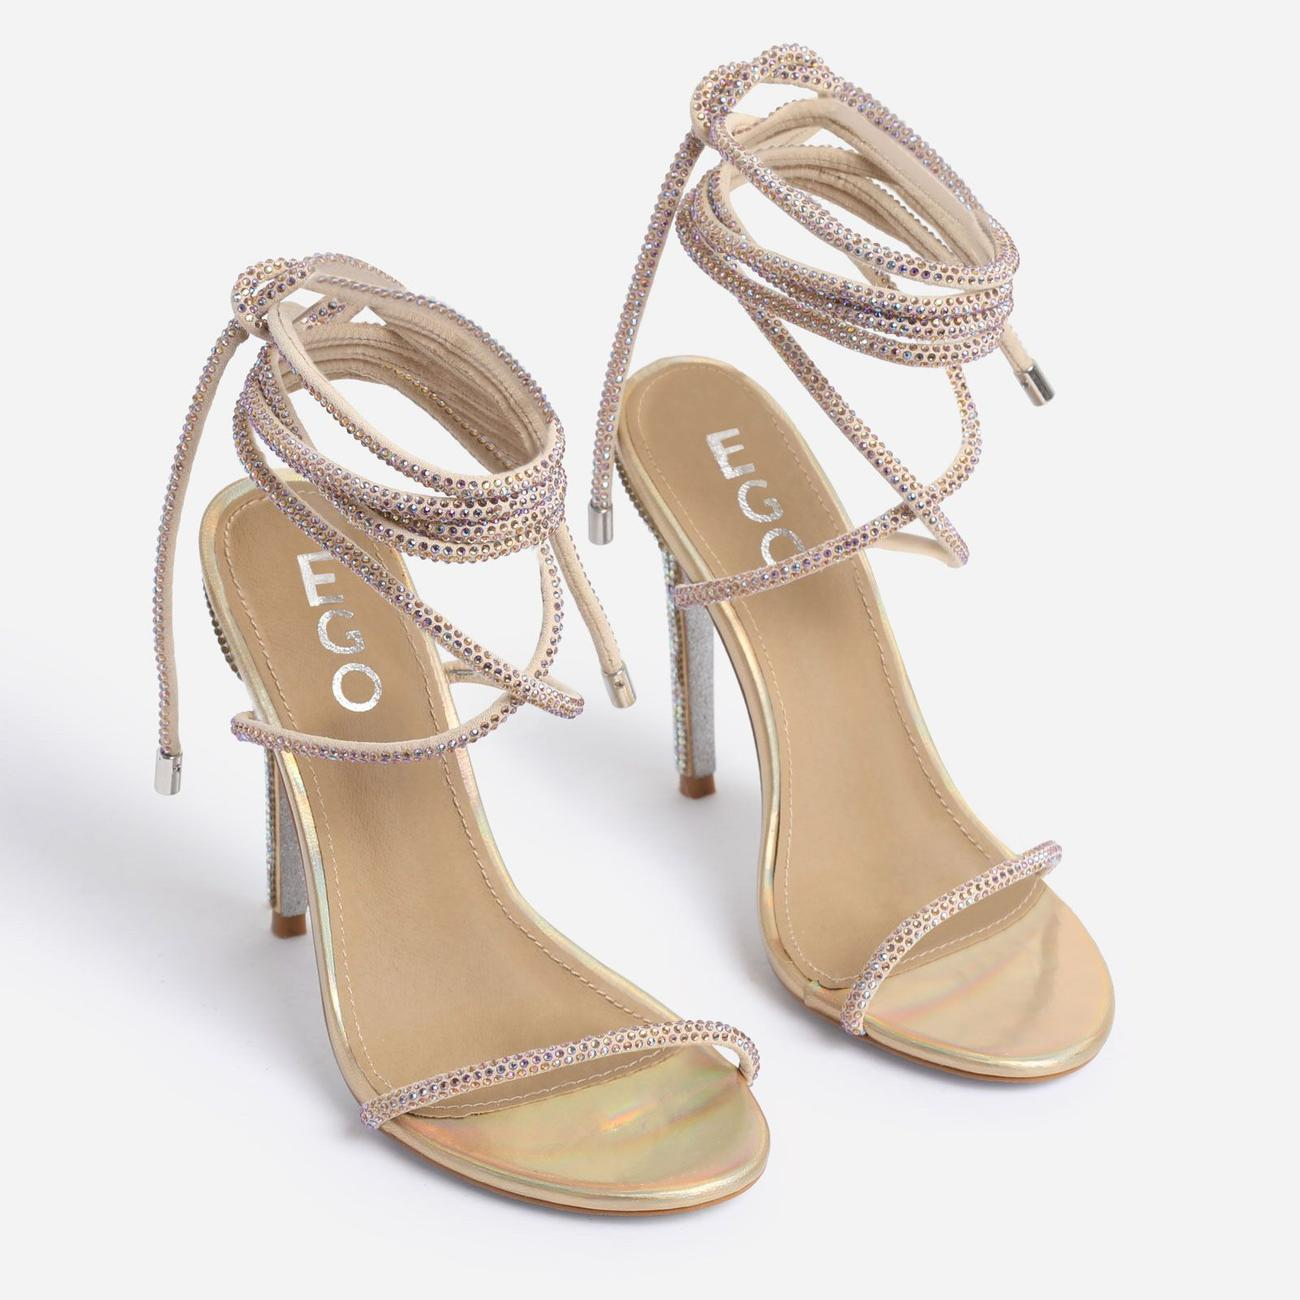 Carmella Glitter Sole Diamante Detail Lace Up Heel In Gold Faux Leather Image 3